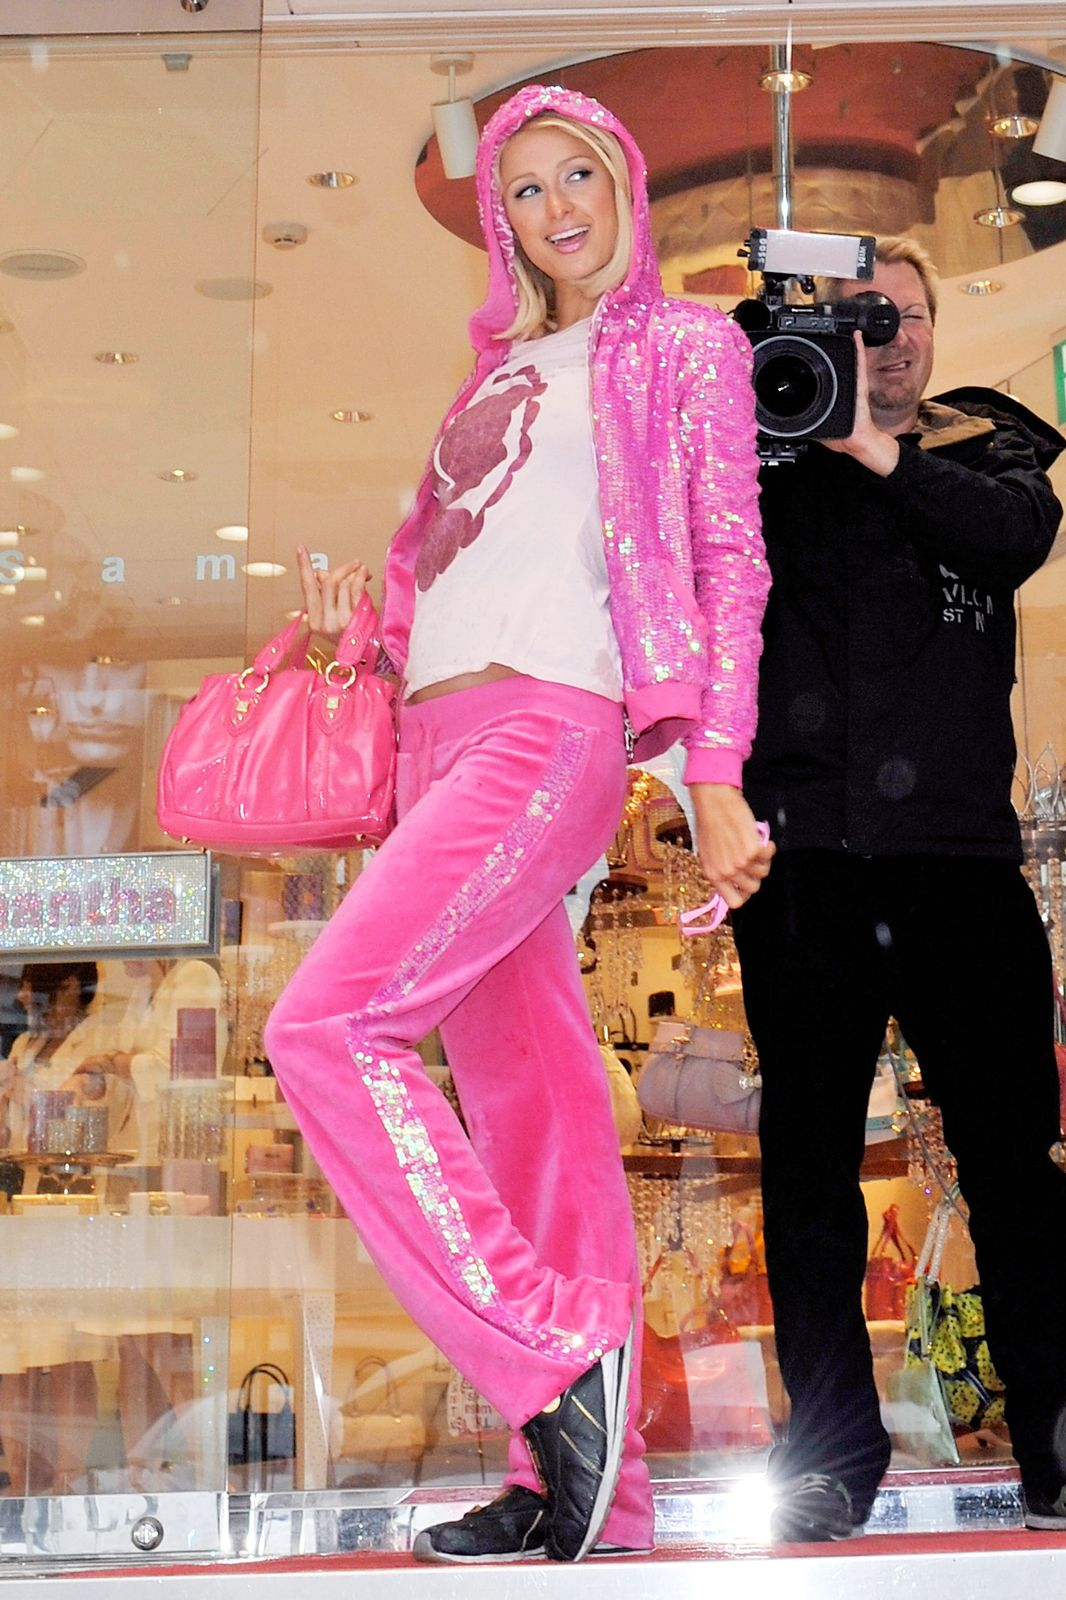 juicy couture closing 2000s celeb fashion trends style